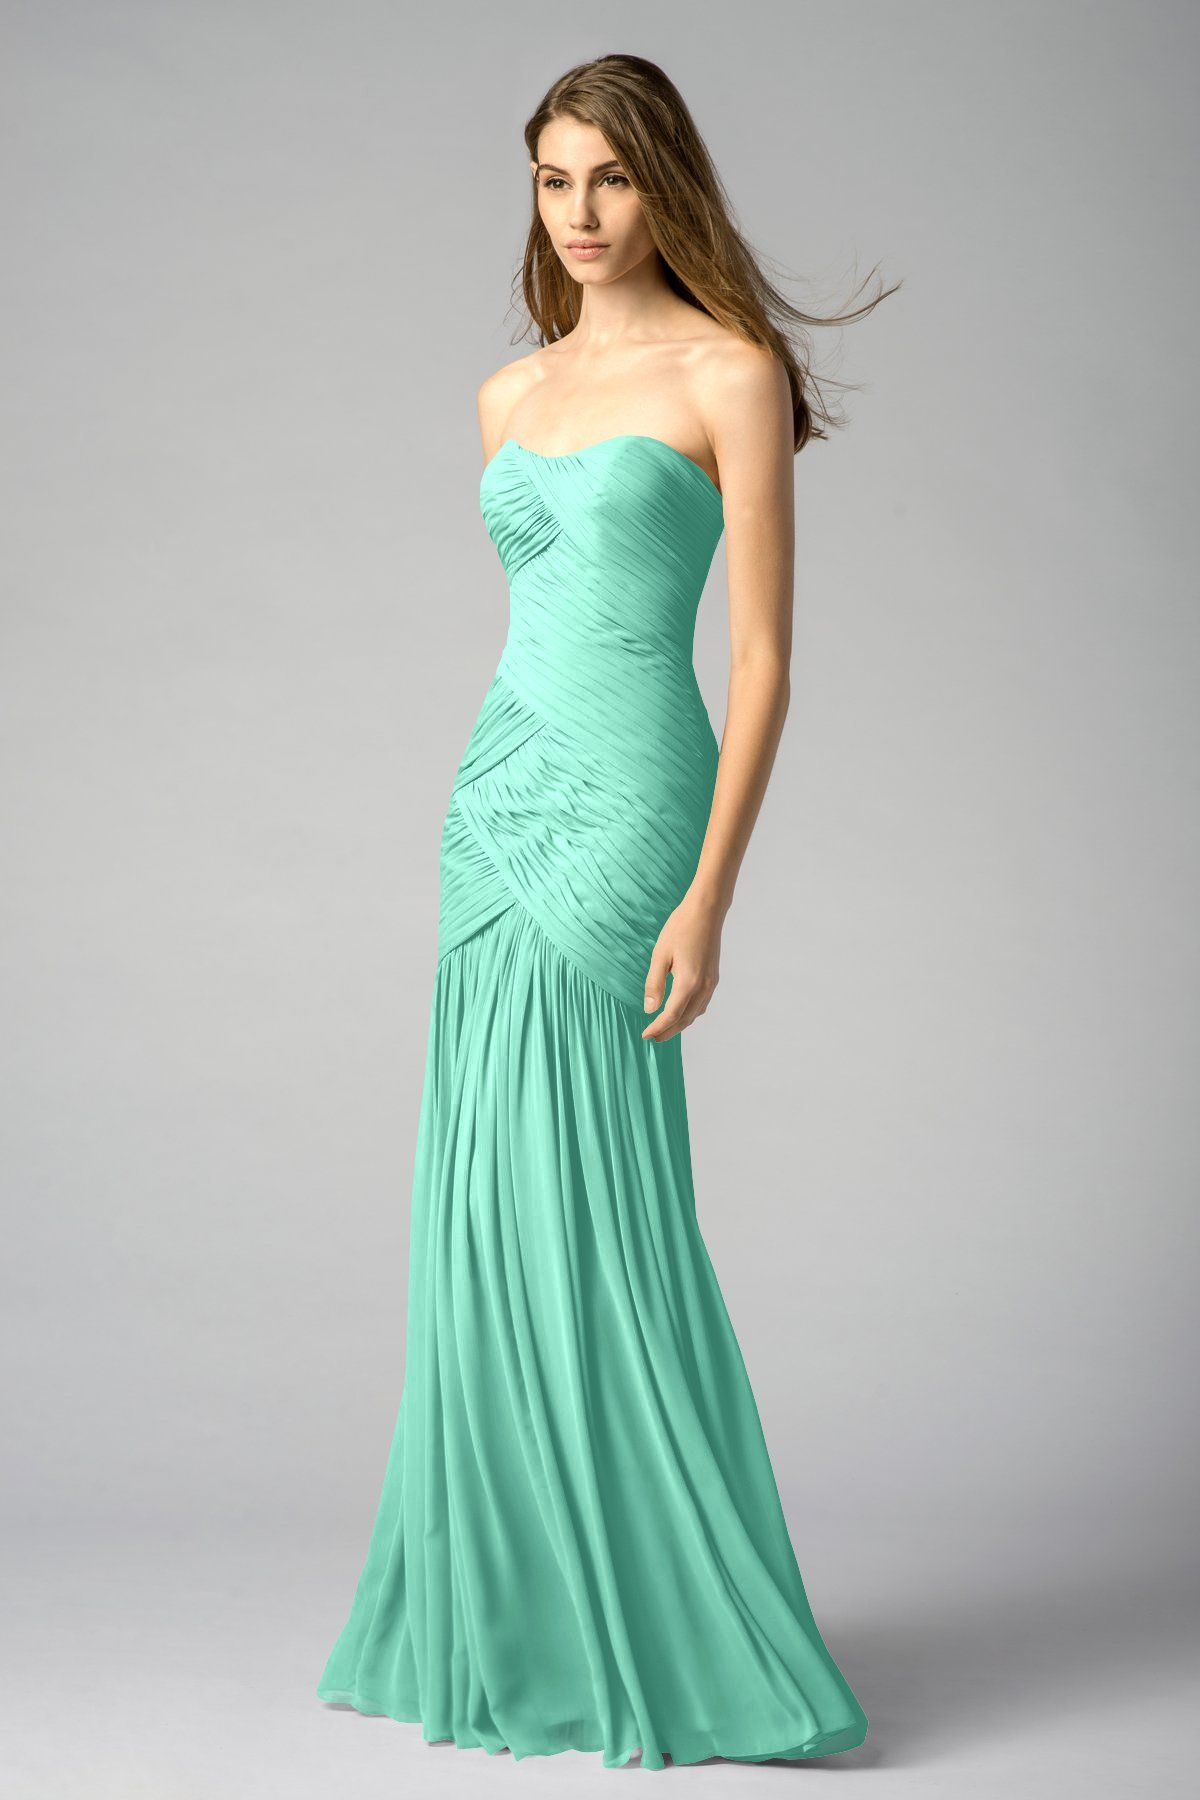 Watters maids dress adoria in the color mint i will add a